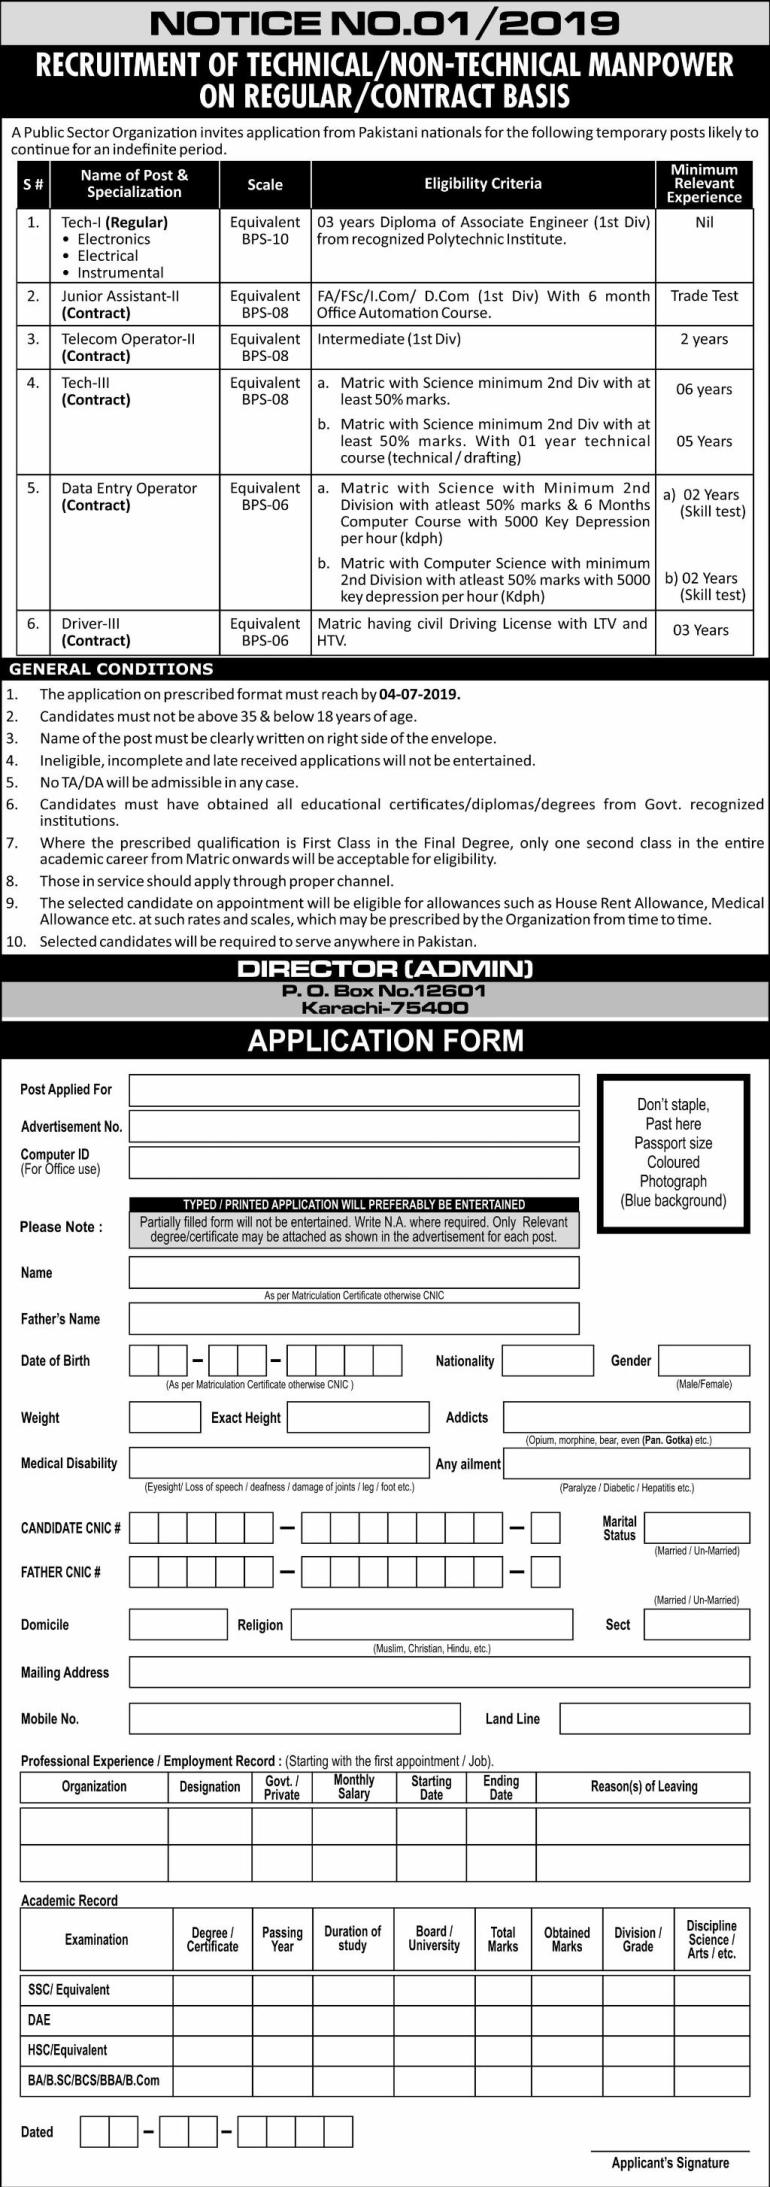 Public sector organization jobs advertisement